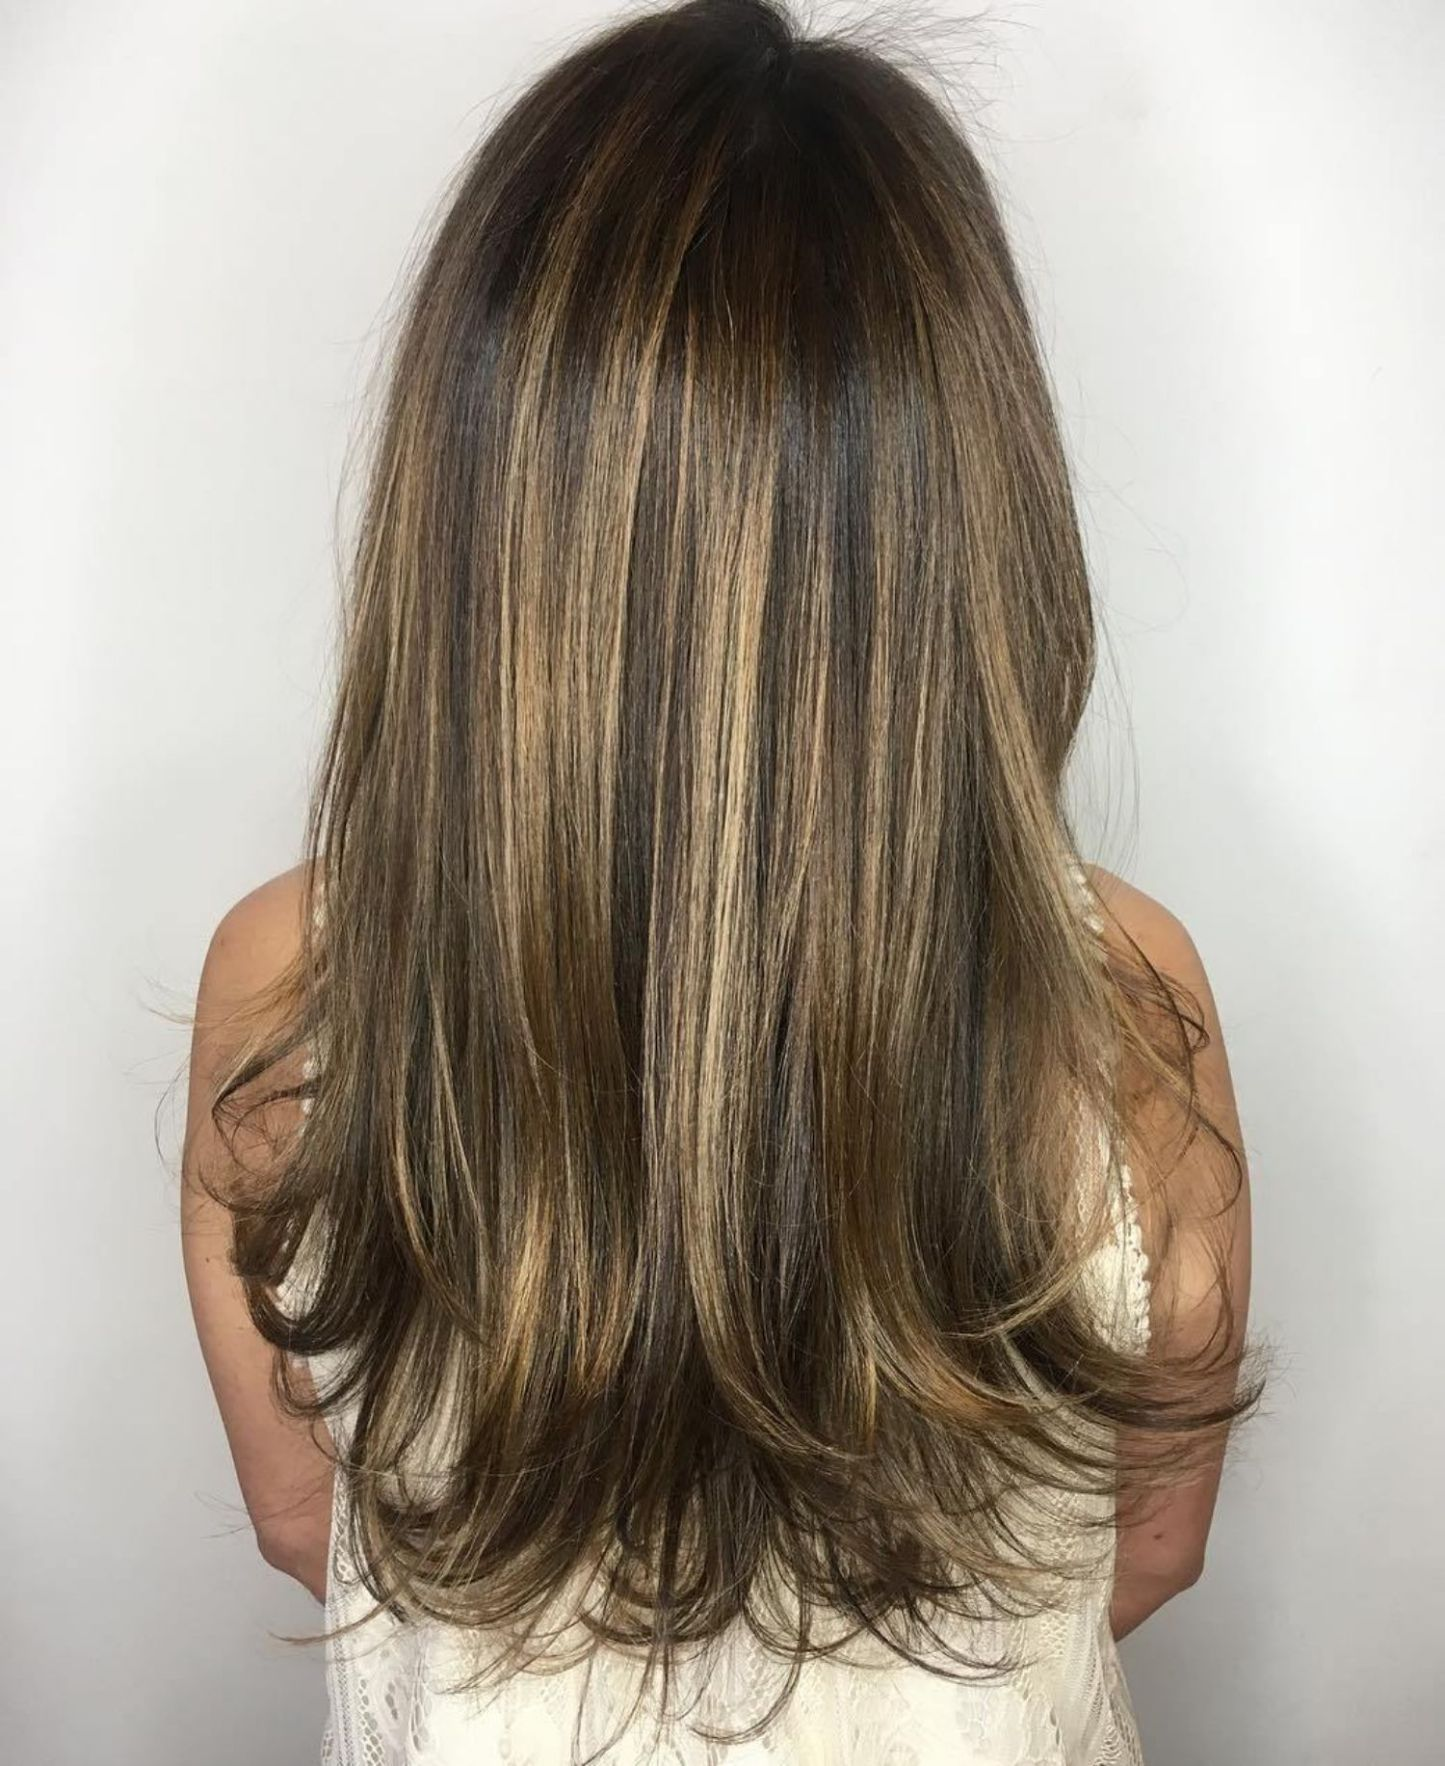 40 Picture-Perfect Hairstyles for Long Thin Hair   Long ...